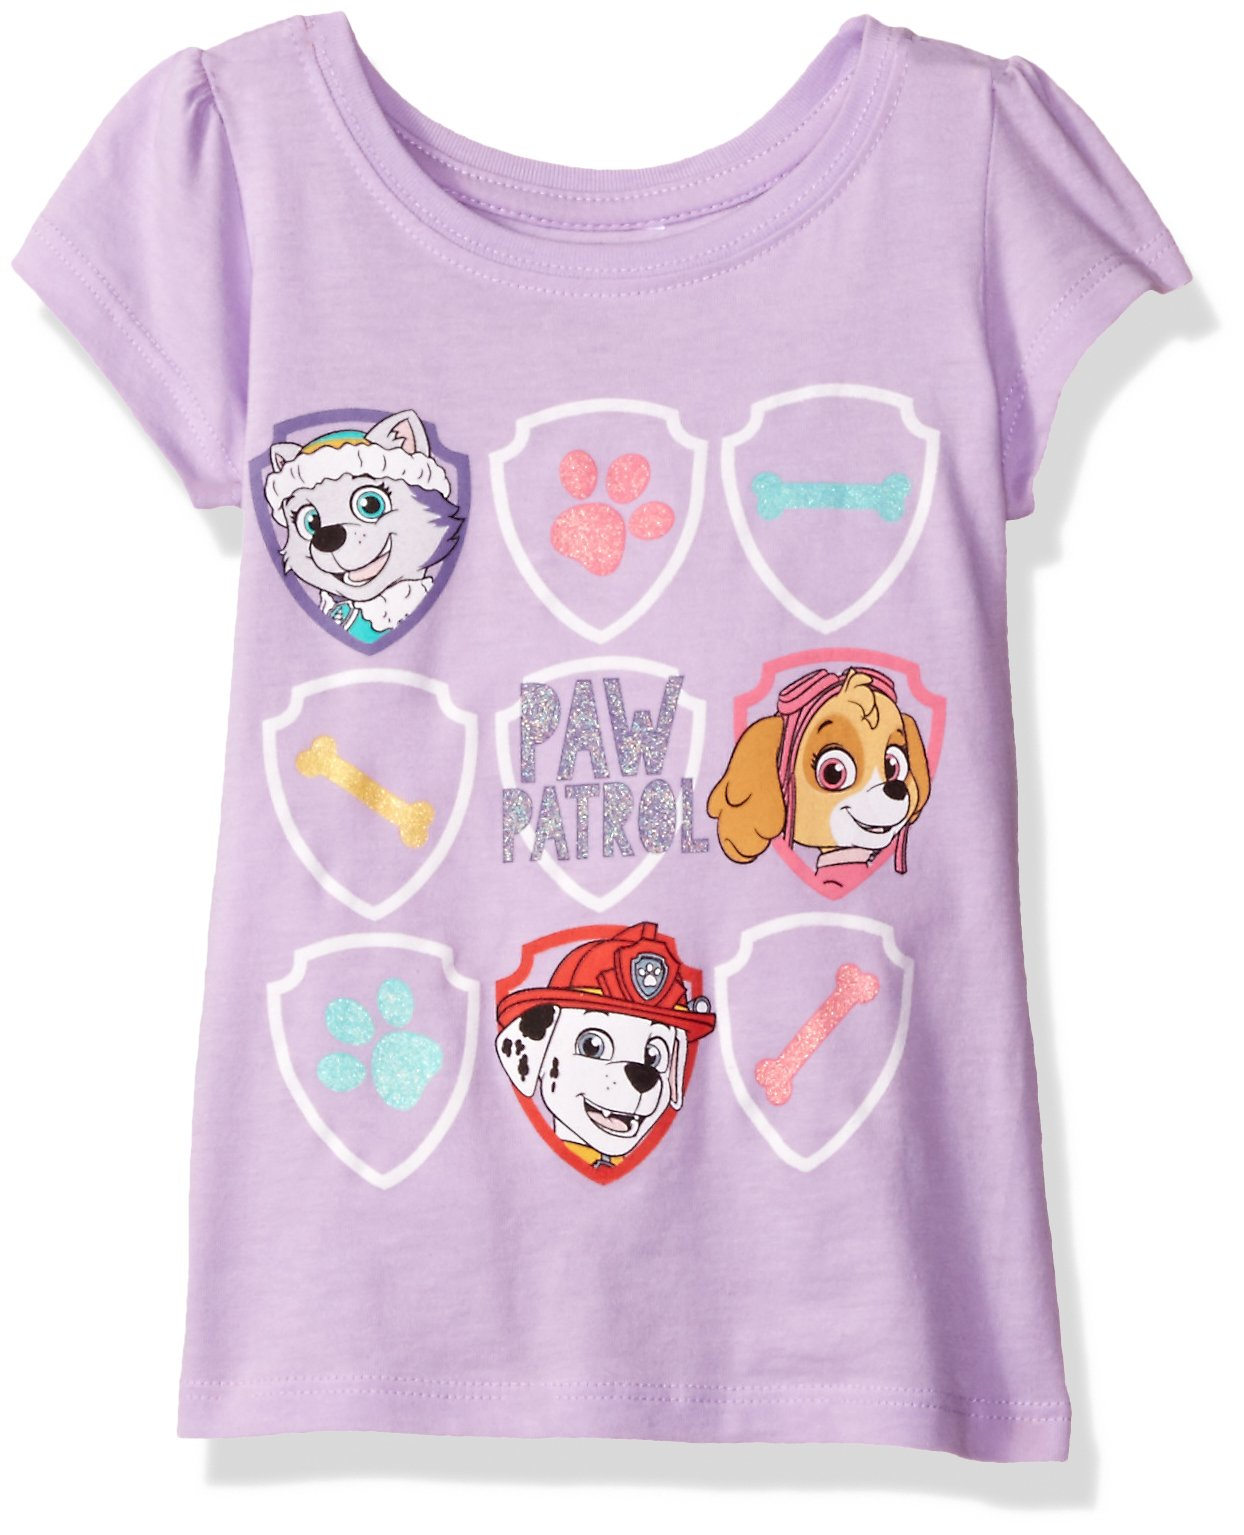 Nickelodeon Little Girls' Toddler Paw Patrol Group Short-Sleeved Puff T-Shirt, Lilac, 5T